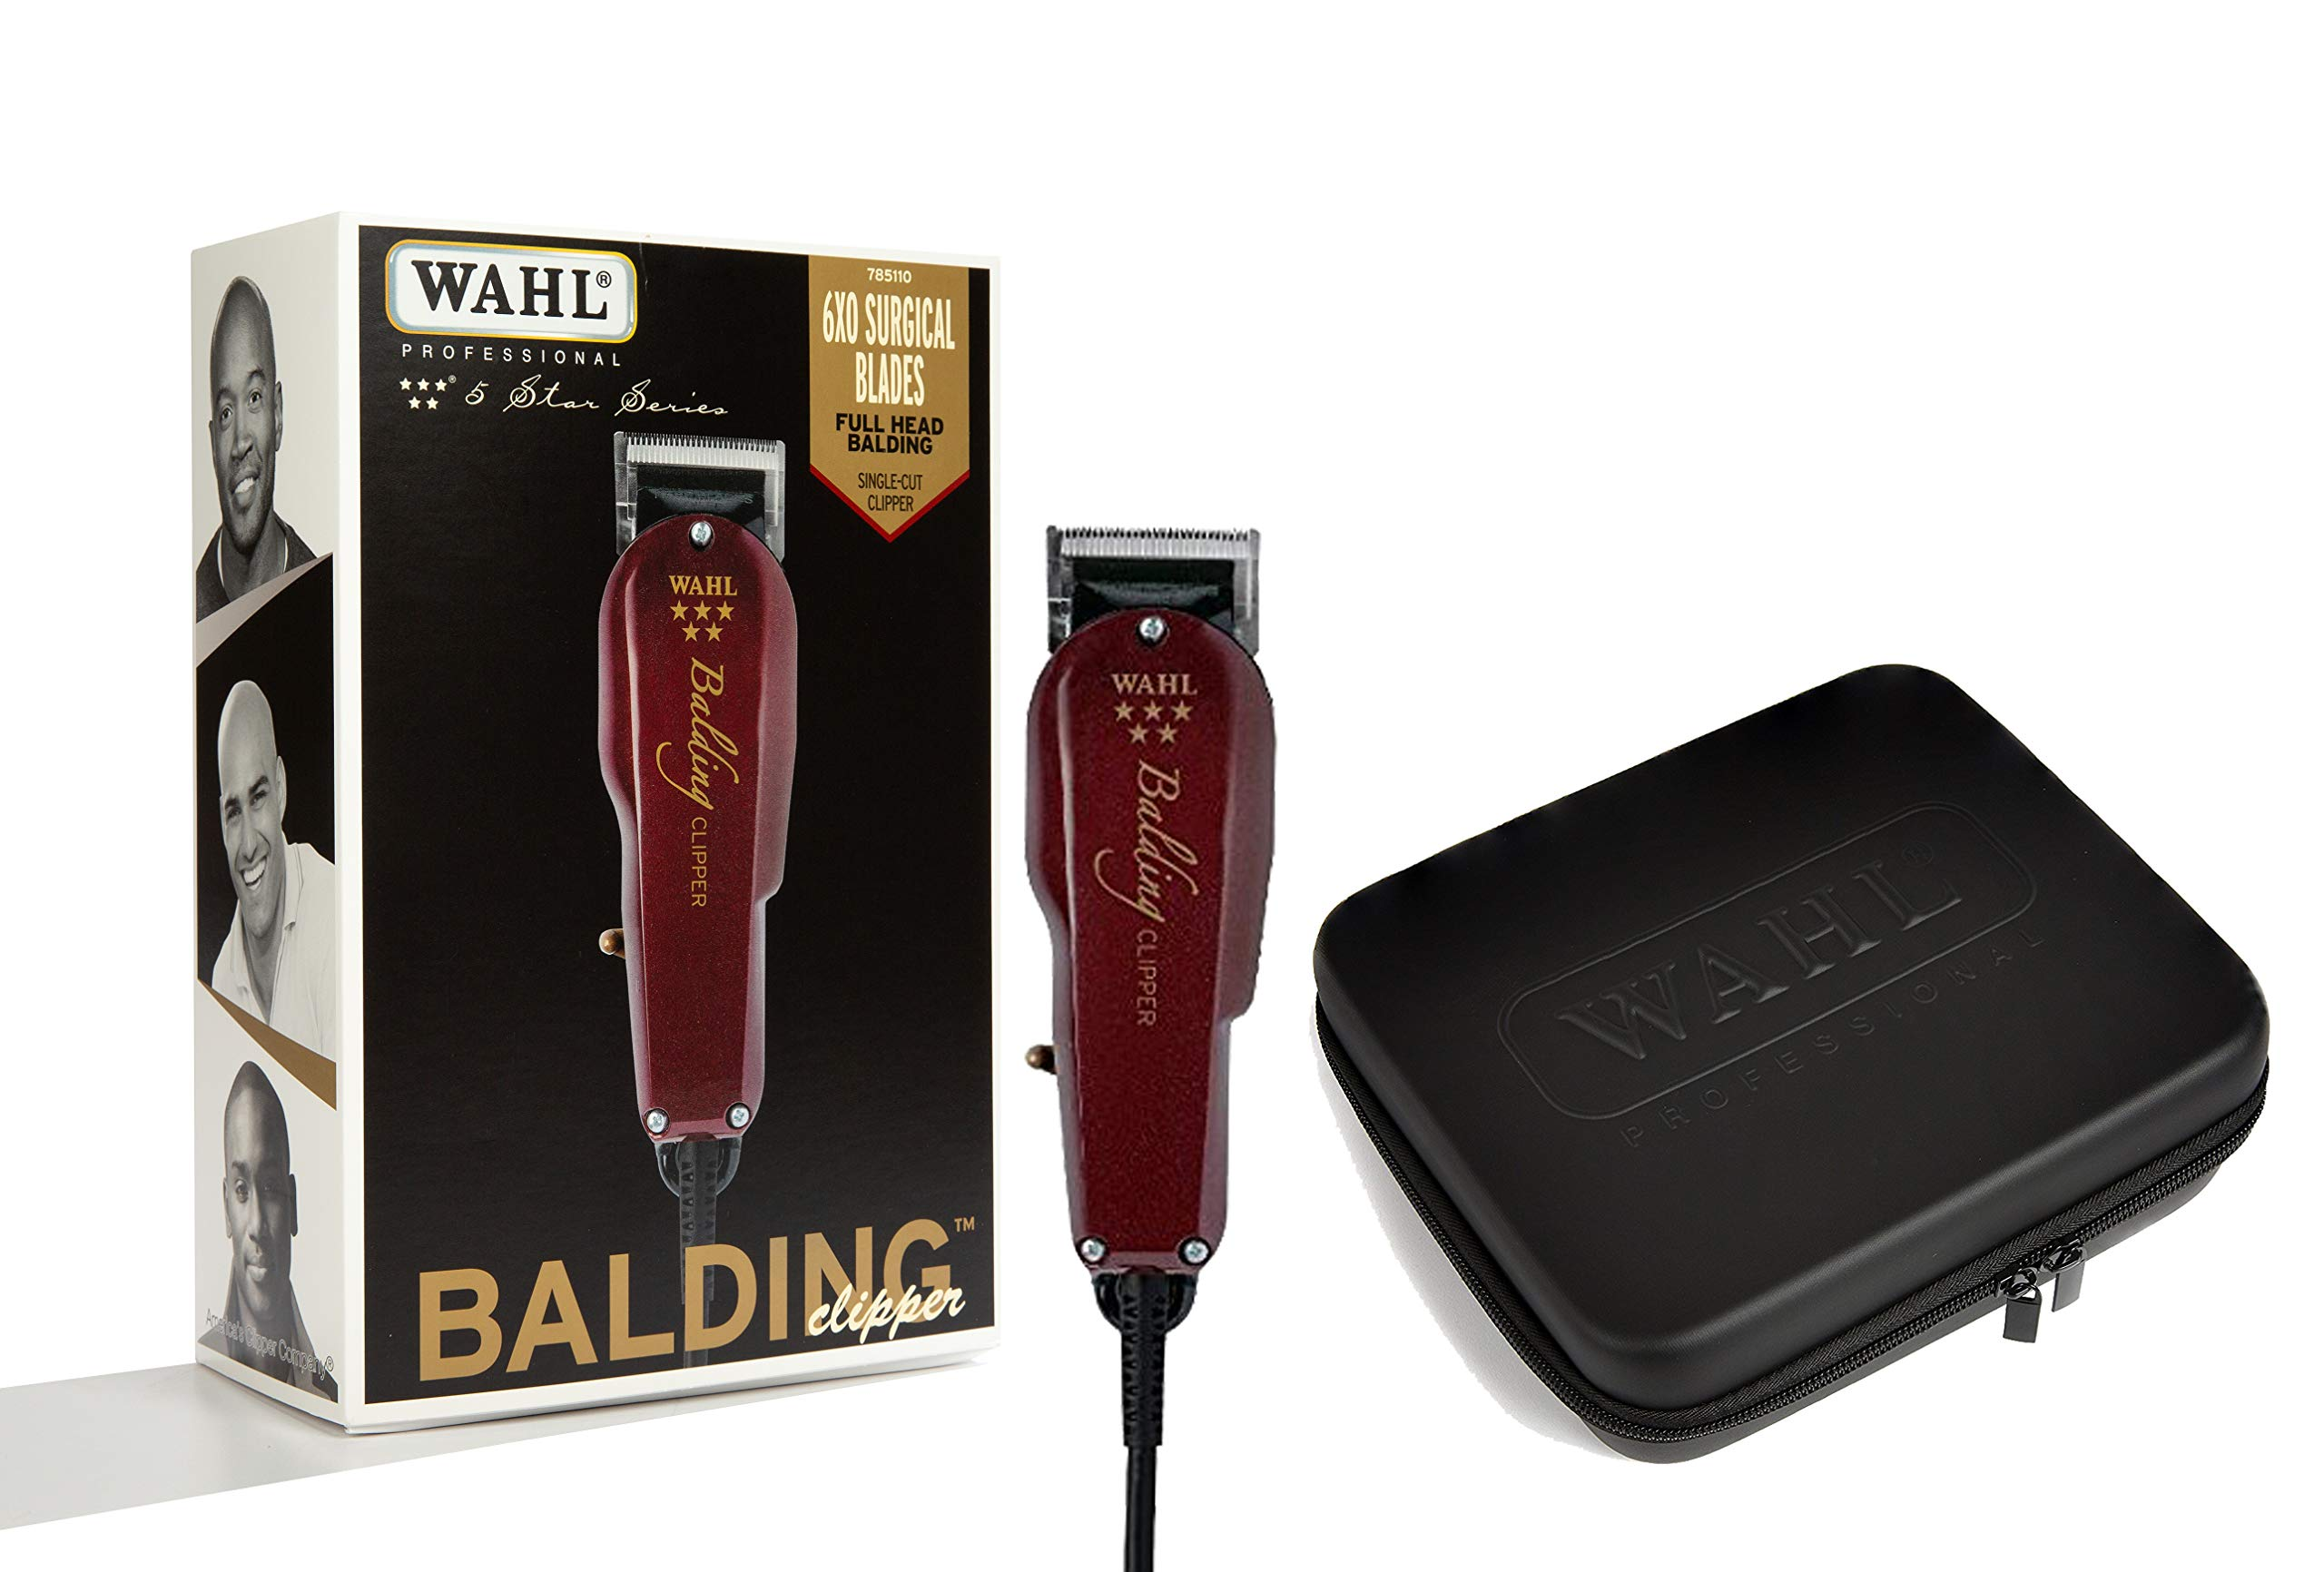 Wahl Professional 5-Star Balding Clipper 8110 with Travel Storage Case 90732 Designed for Barbers and Stylists by Zomma